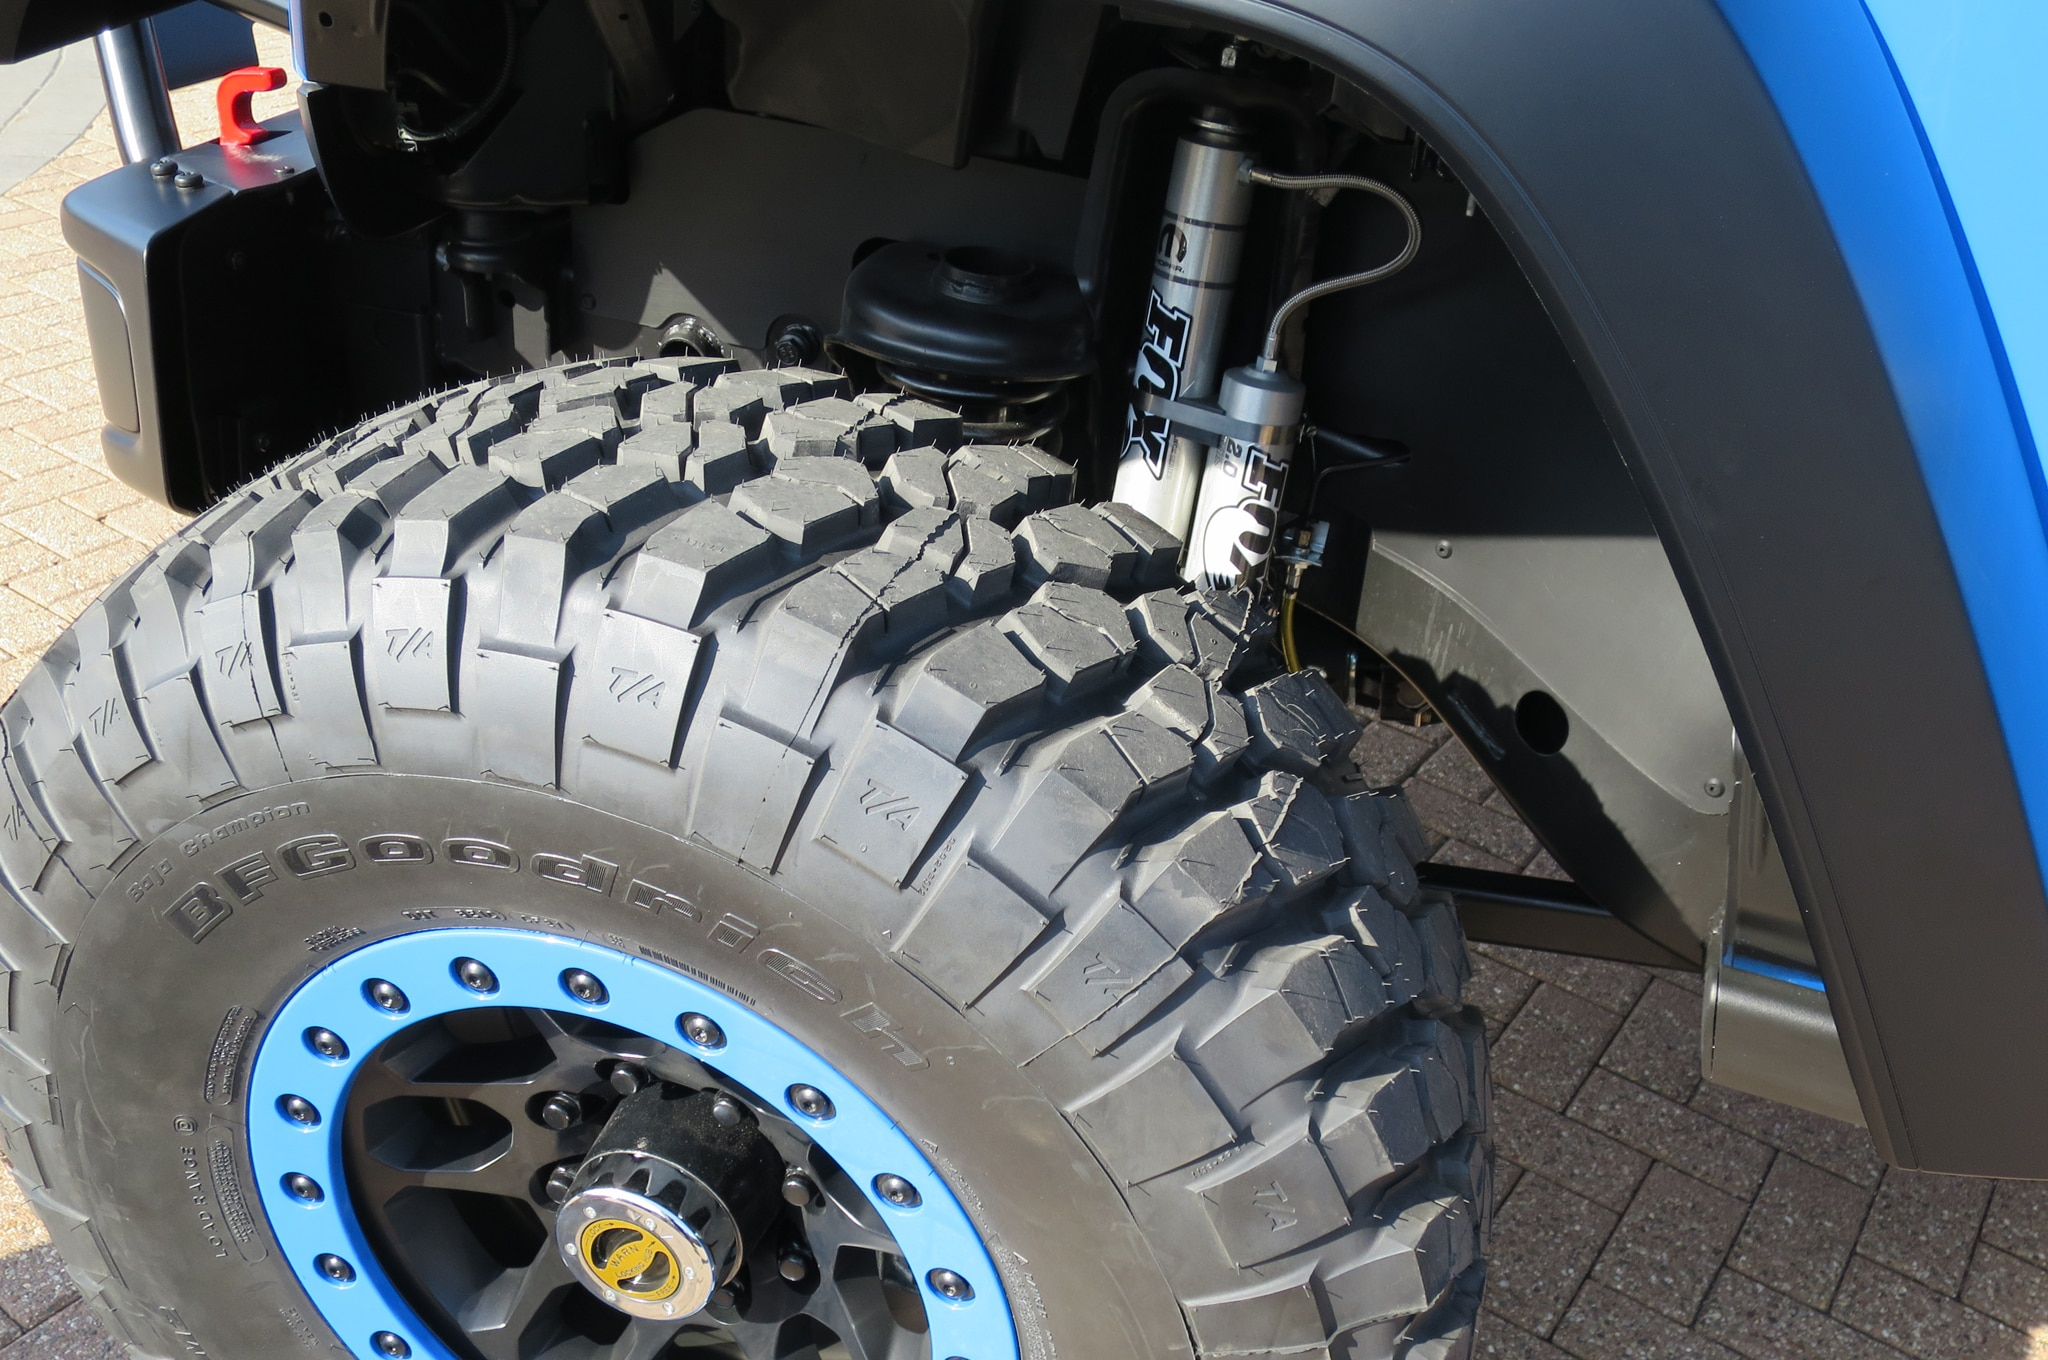 Jeep Wrangler Maximum Performance Concept wheels